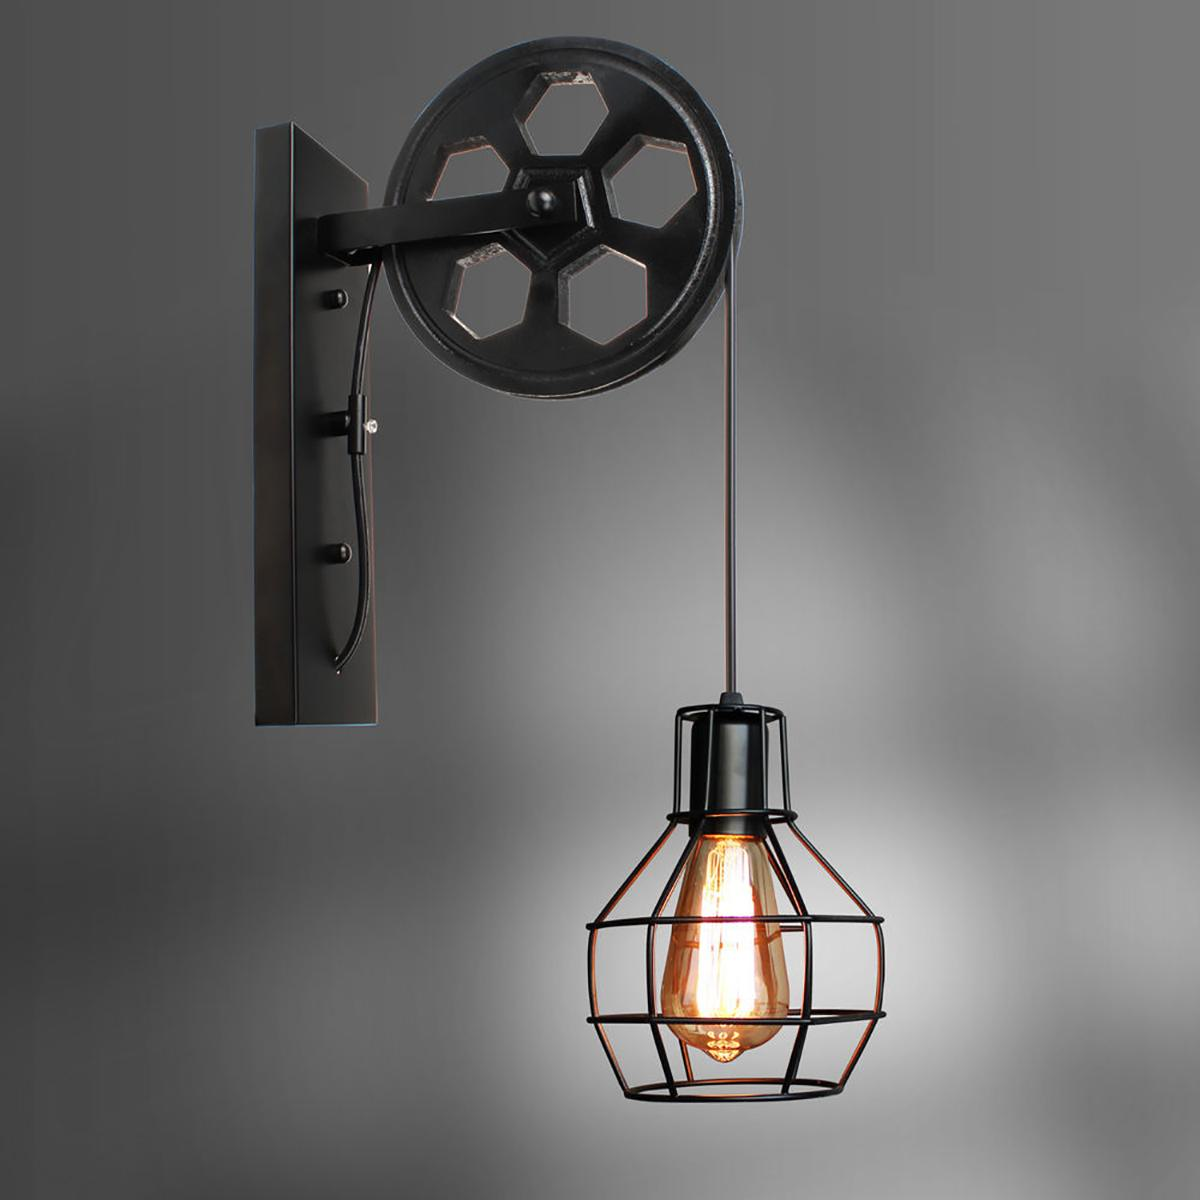 US $30.30 30% OFF30 Colors Retro Iron Wall Lamp Lifting Pulley E30  Adjustable Sconce Light for Home Corridor Living Room Restaurant Loft  CafeLED